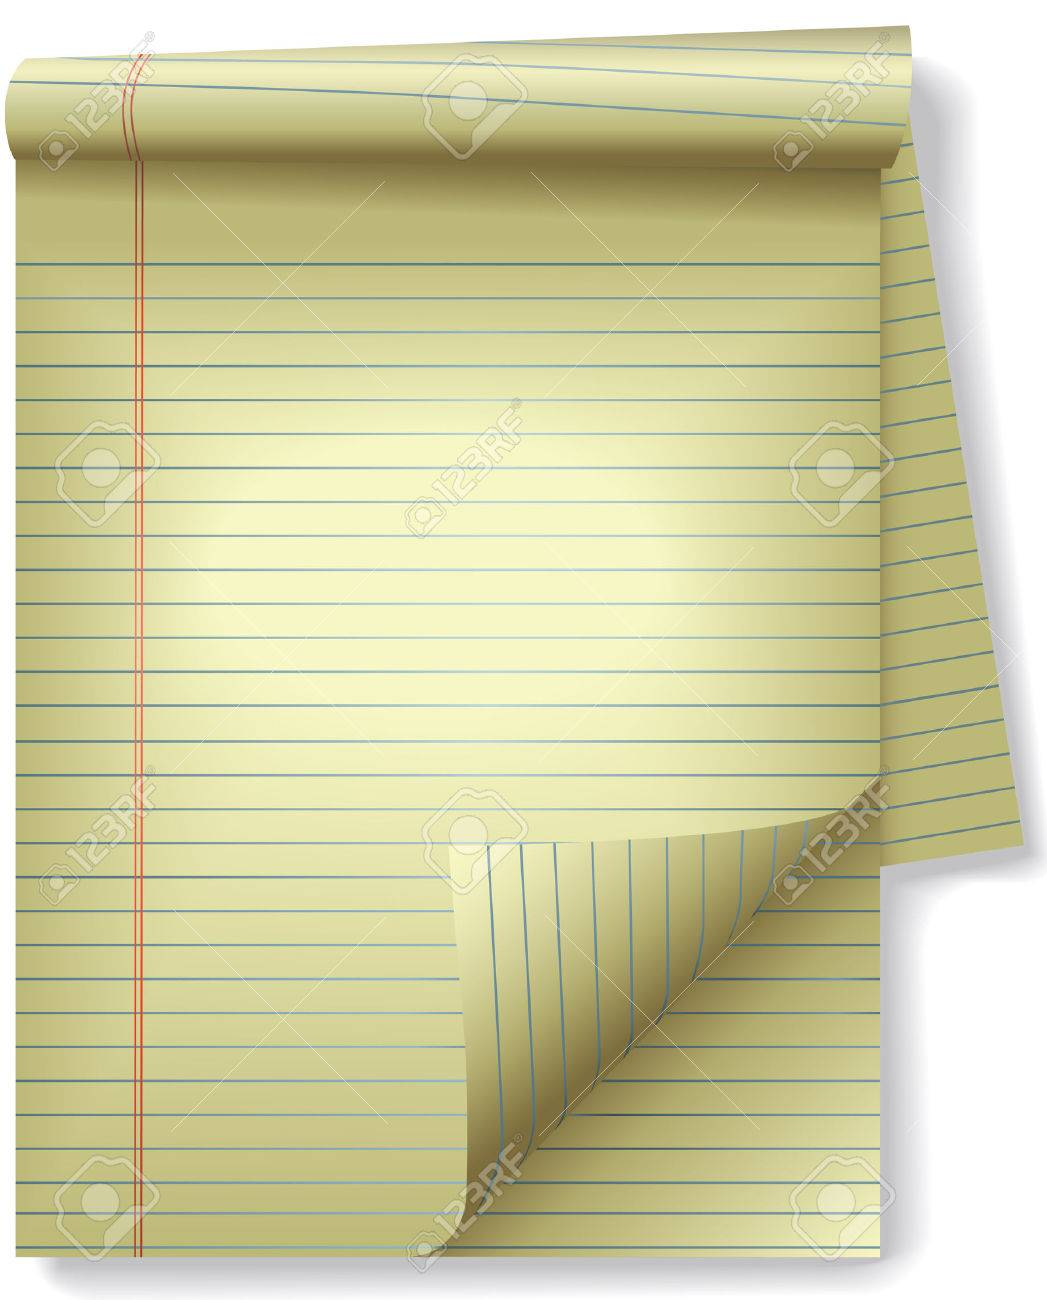 Pages of legal ruled notebook pad paper - page curl, drop shadow spotlight highlight. Easily tilt or otherwise edit it. Stock Vector - 2632009